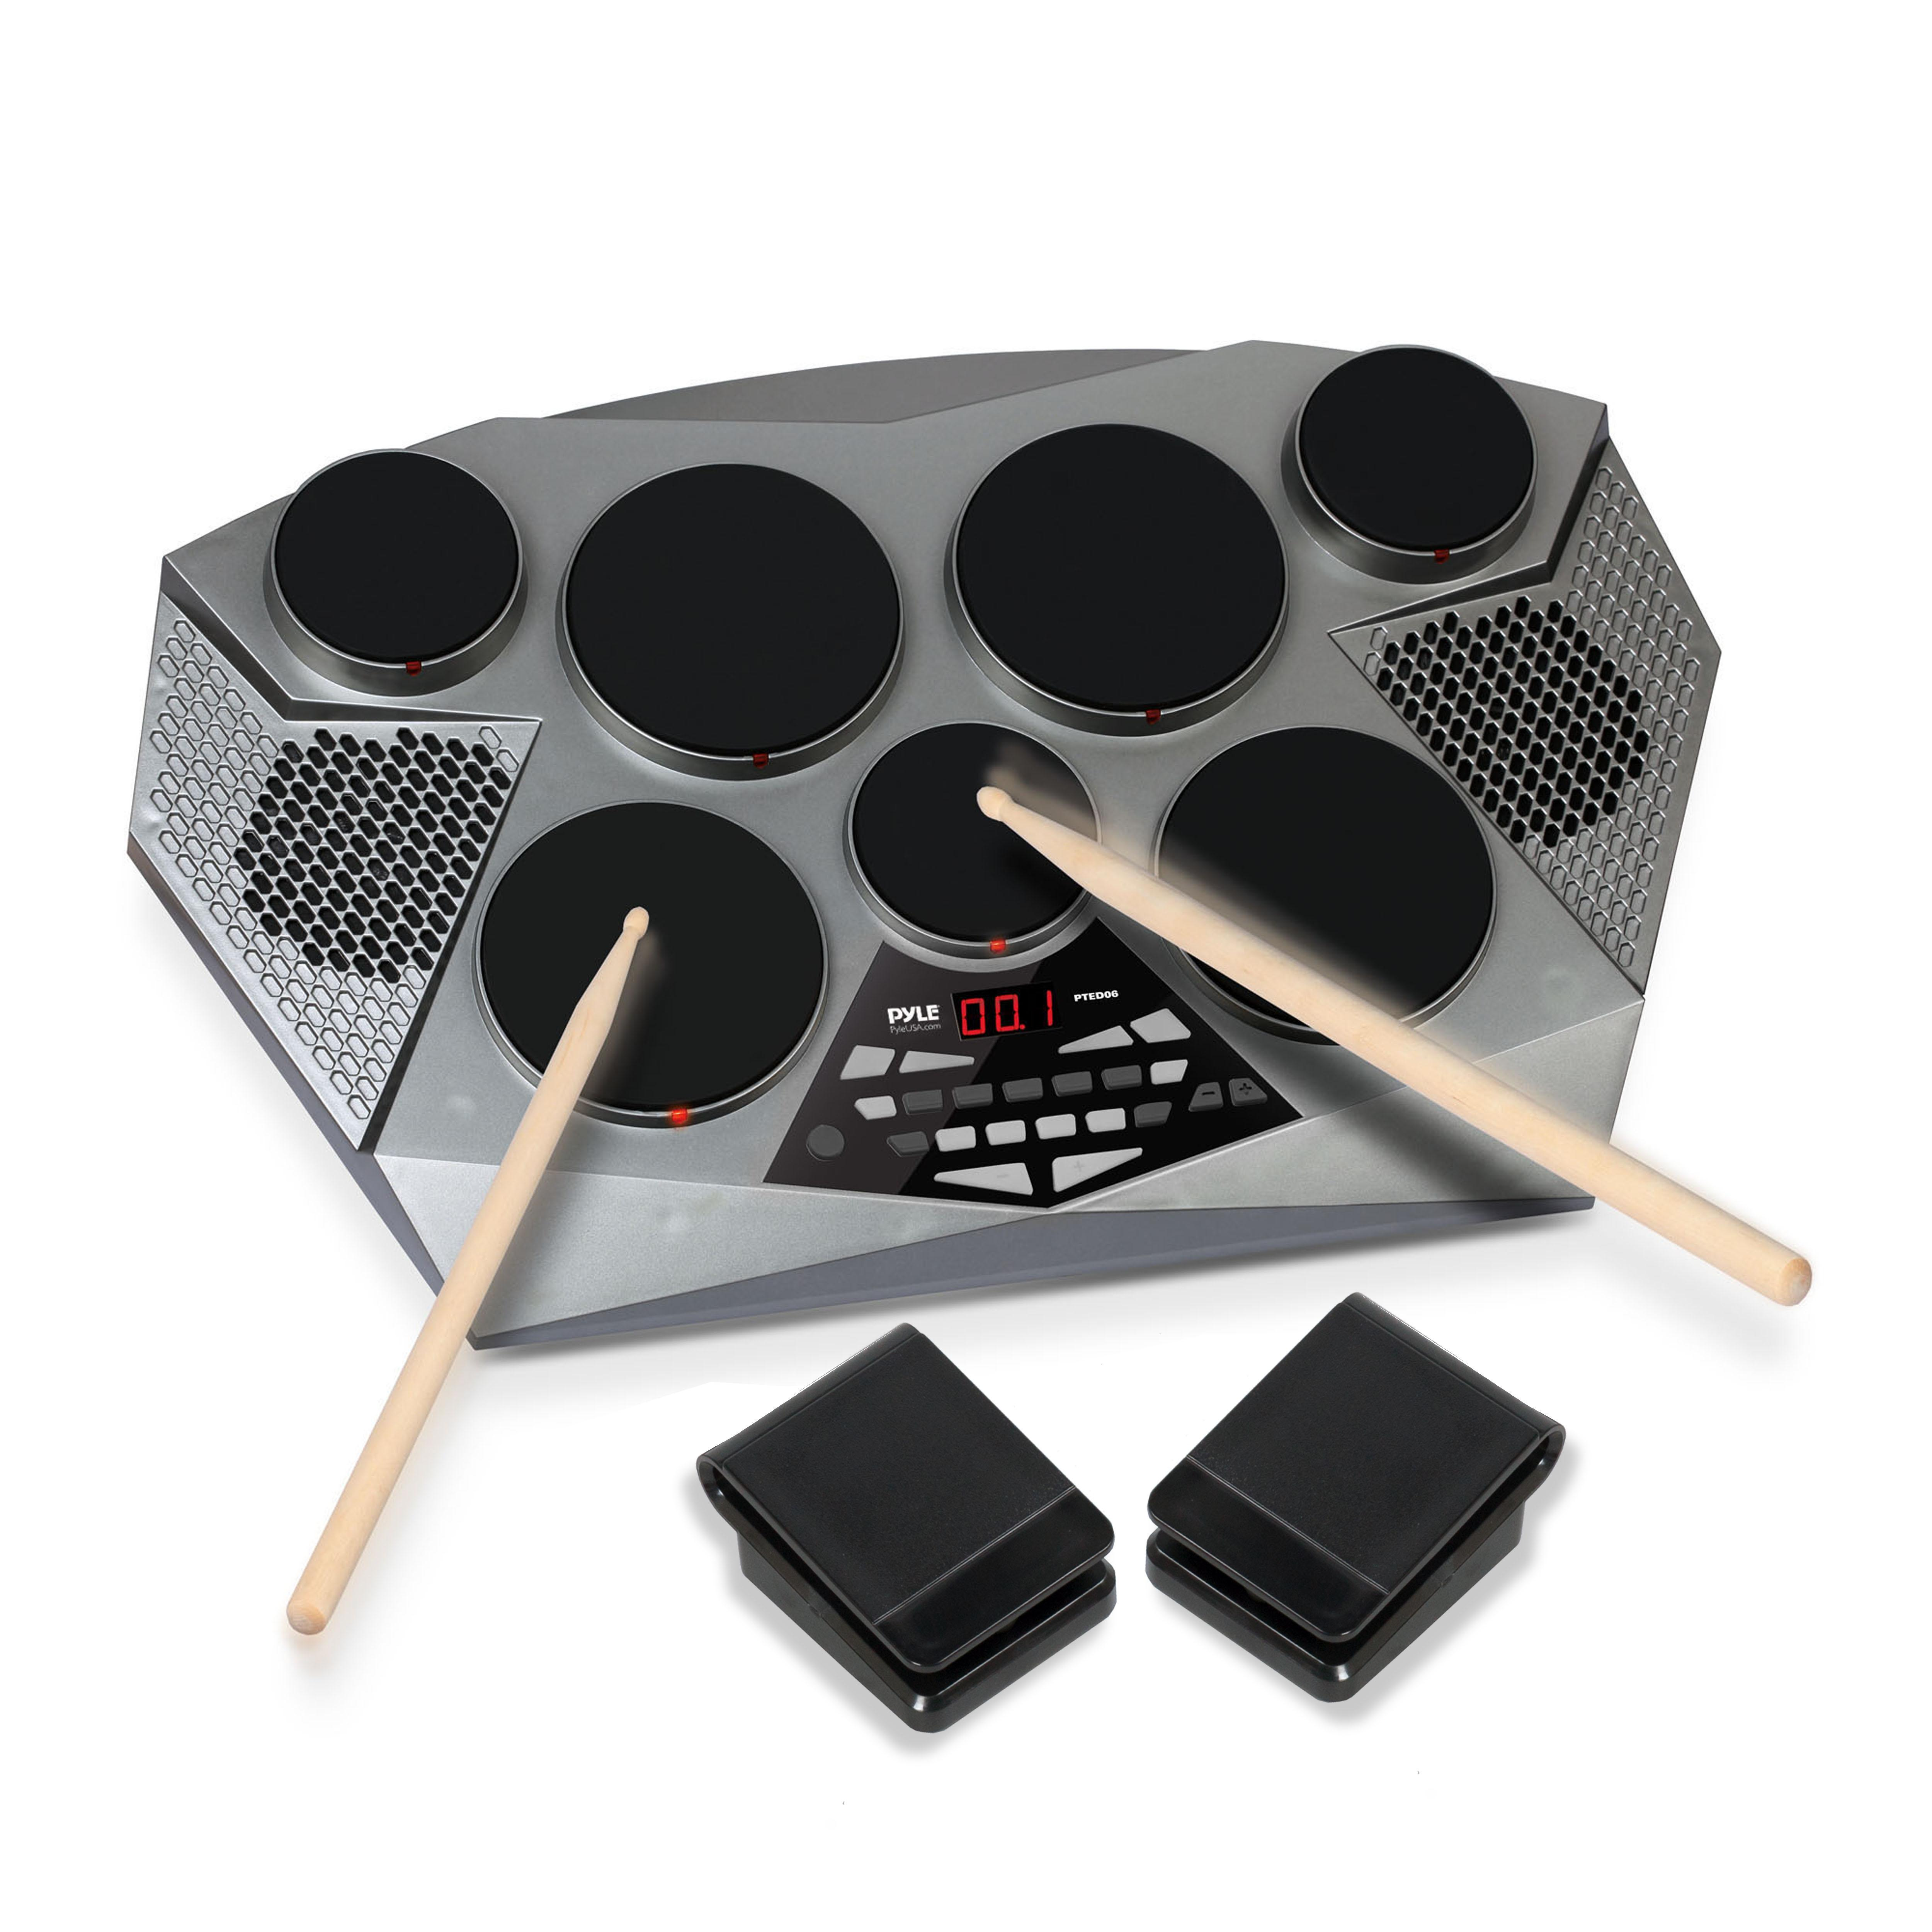 pyle electronic drum set pad with built in speakers foot pedals and drum sticks kit. Black Bedroom Furniture Sets. Home Design Ideas